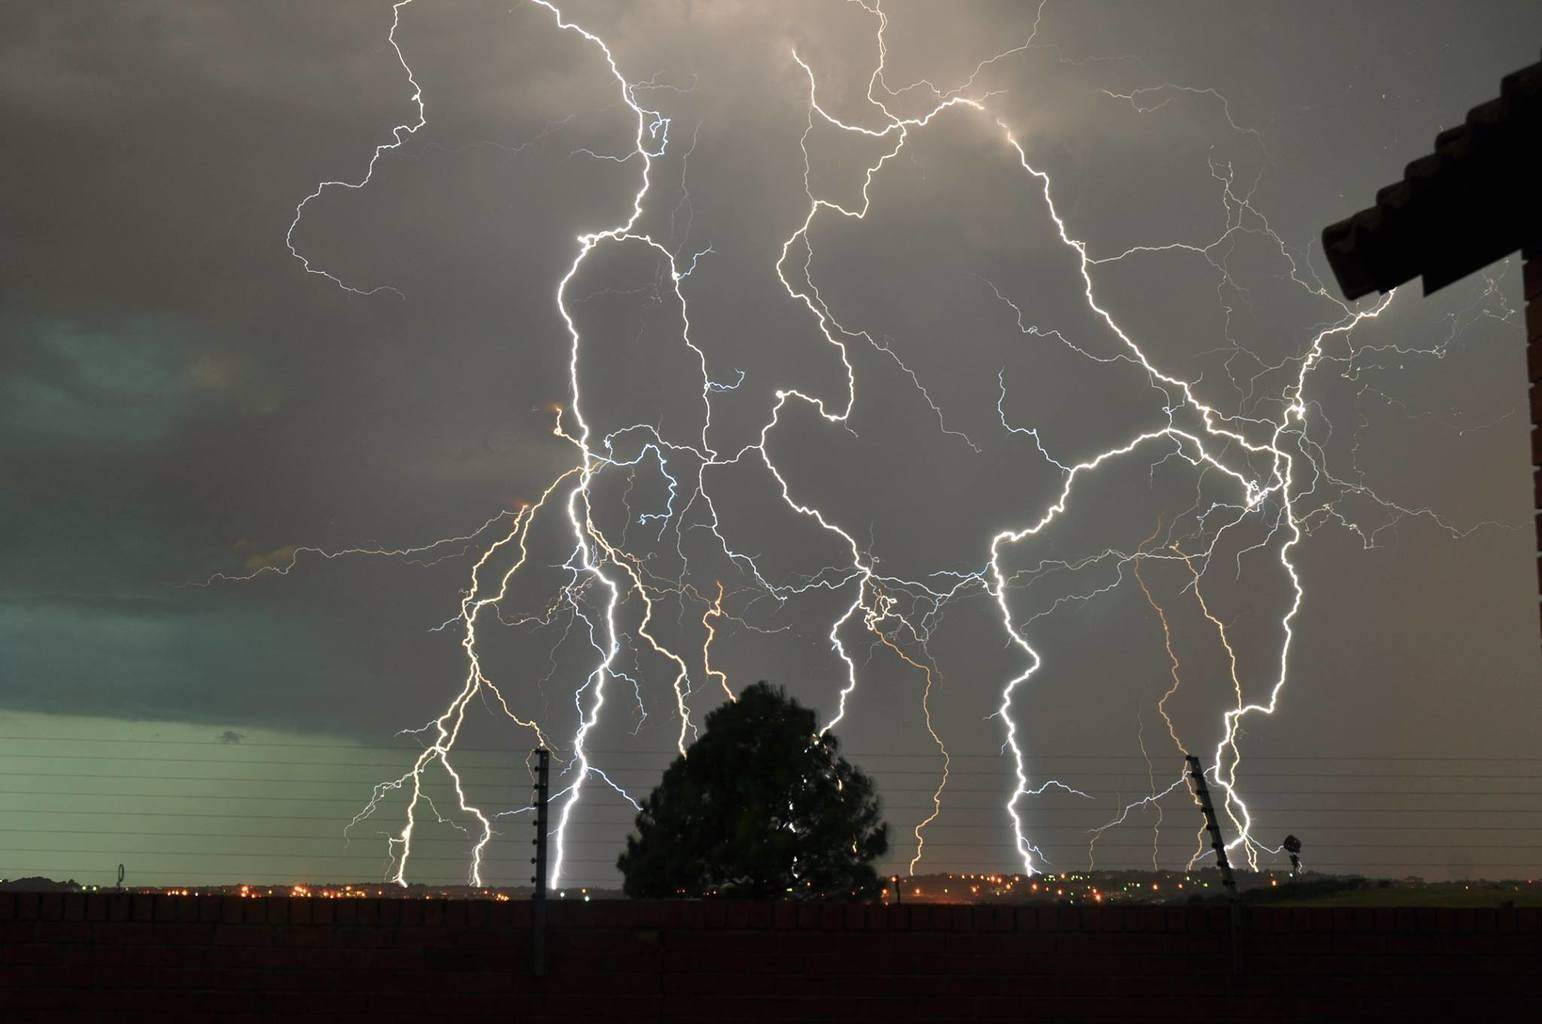 Just had the most amazing light show in Pretoria, South Africa this evening.